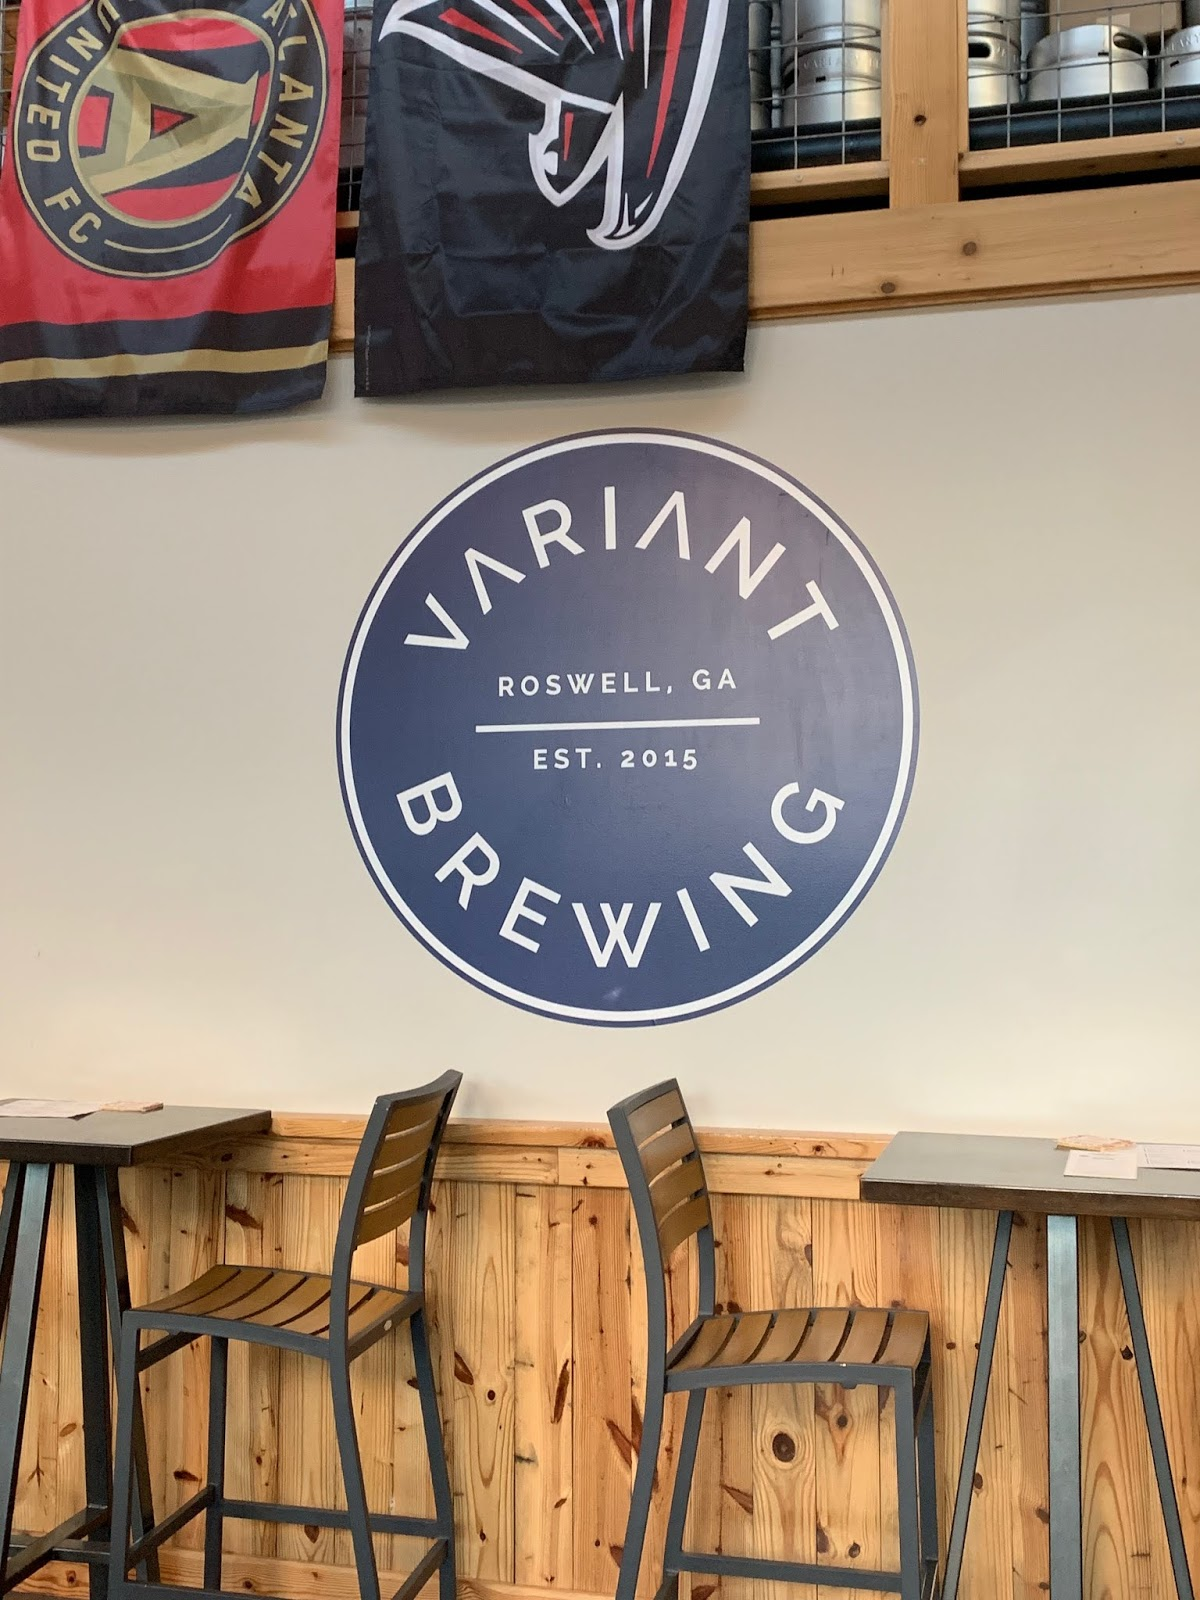 Some high top tables and chairs in front of the logo for Variant Brewing painted on the wall